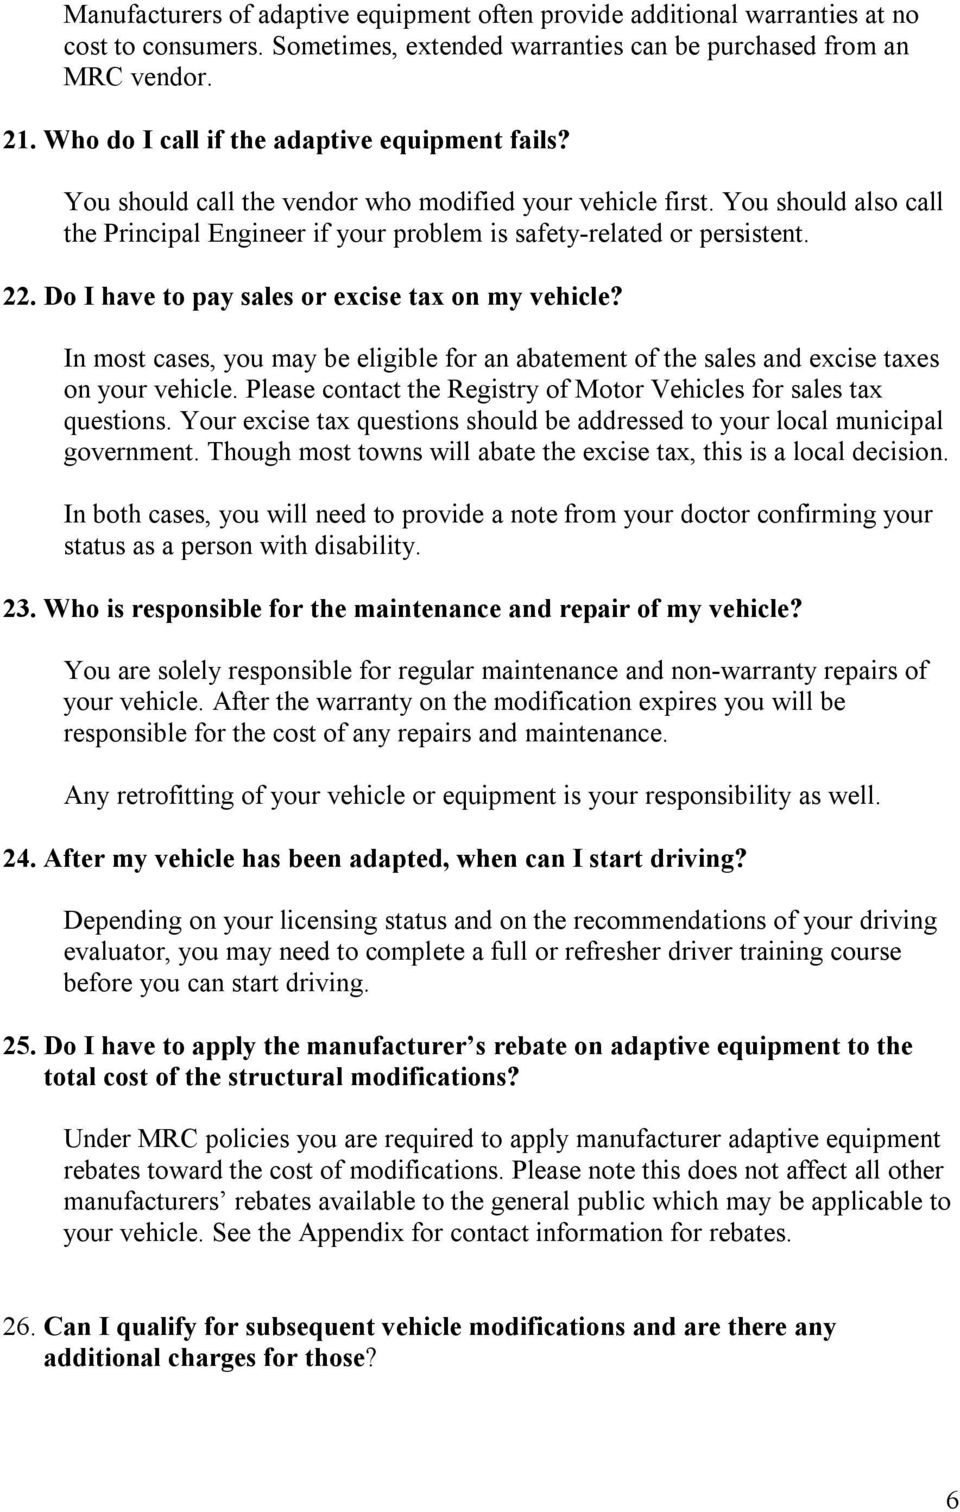 22. Do I have to pay sales or excise tax on my vehicle? In most cases, you may be eligible for an abatement of the sales and excise taxes on your vehicle.